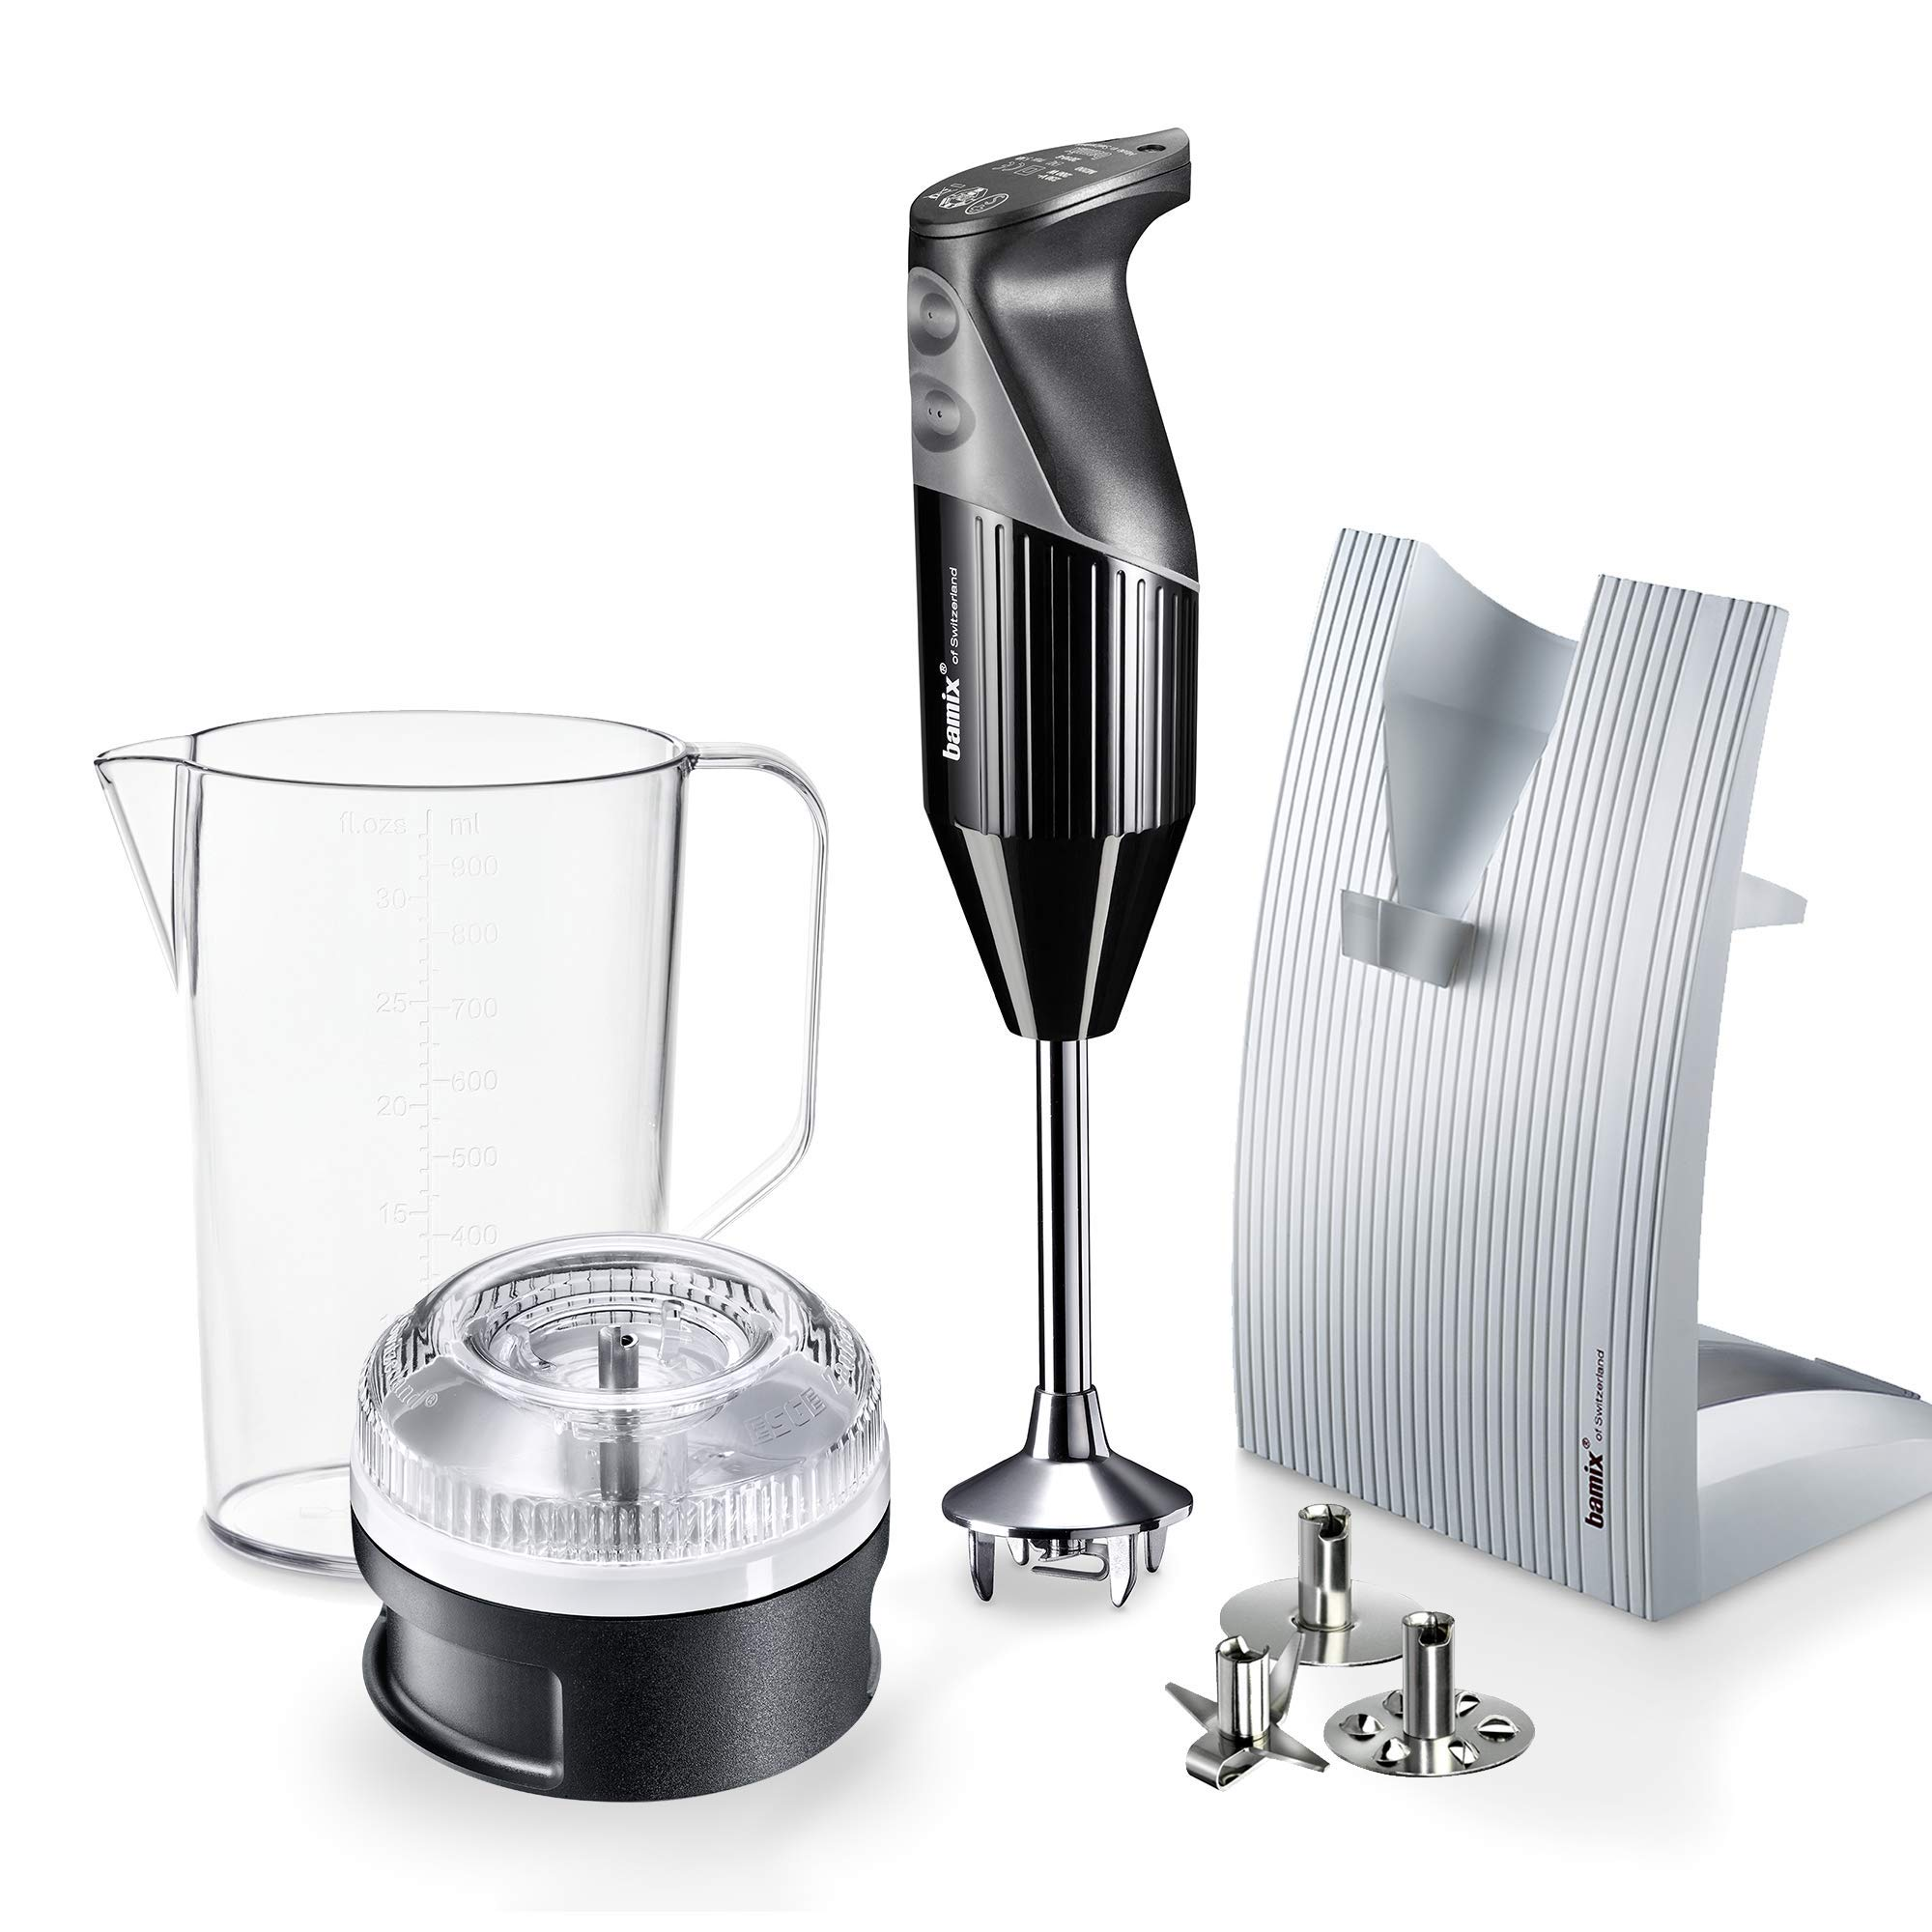 """Bamix – M150 """"SwissLine"""" Immersion Hand Blender – 150W, 120V, 60Hz – The Original Hand Mixer, Blender, and Food Processor All-In-One – Swiss-Made – Includes 3 Stainless Steel Blades – Black"""